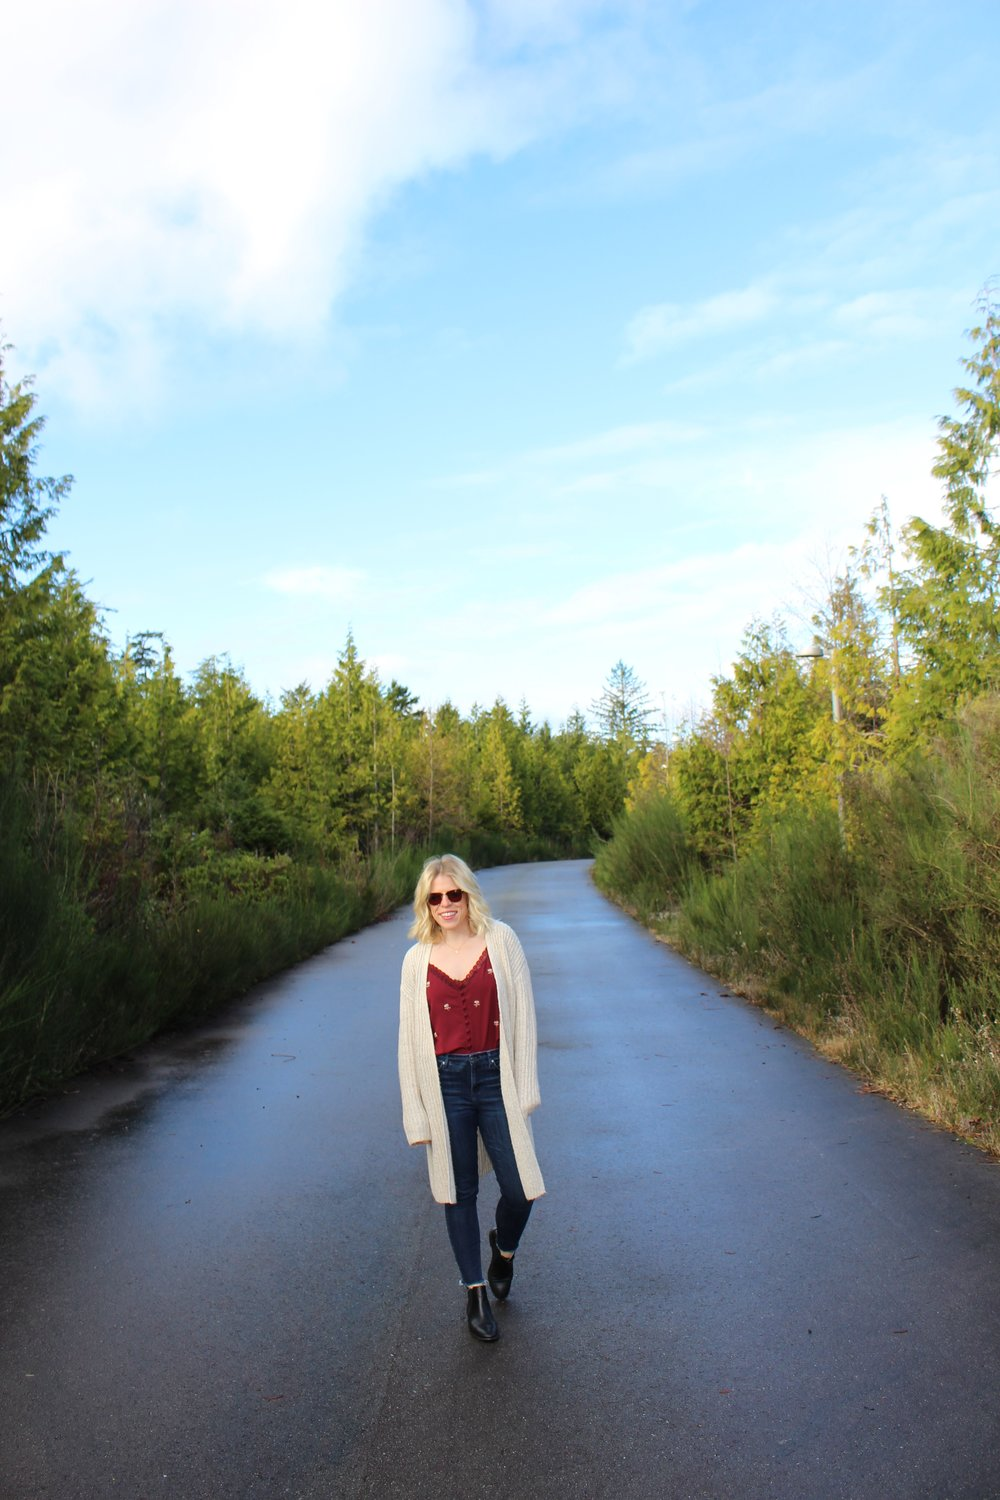 GAP    Cardigan,    Topshop    Embroidered Silk Tank,    Topshop    Jeans,    Topshop    Leather Chelsea Boots,    Ray Ban    Sunglasses